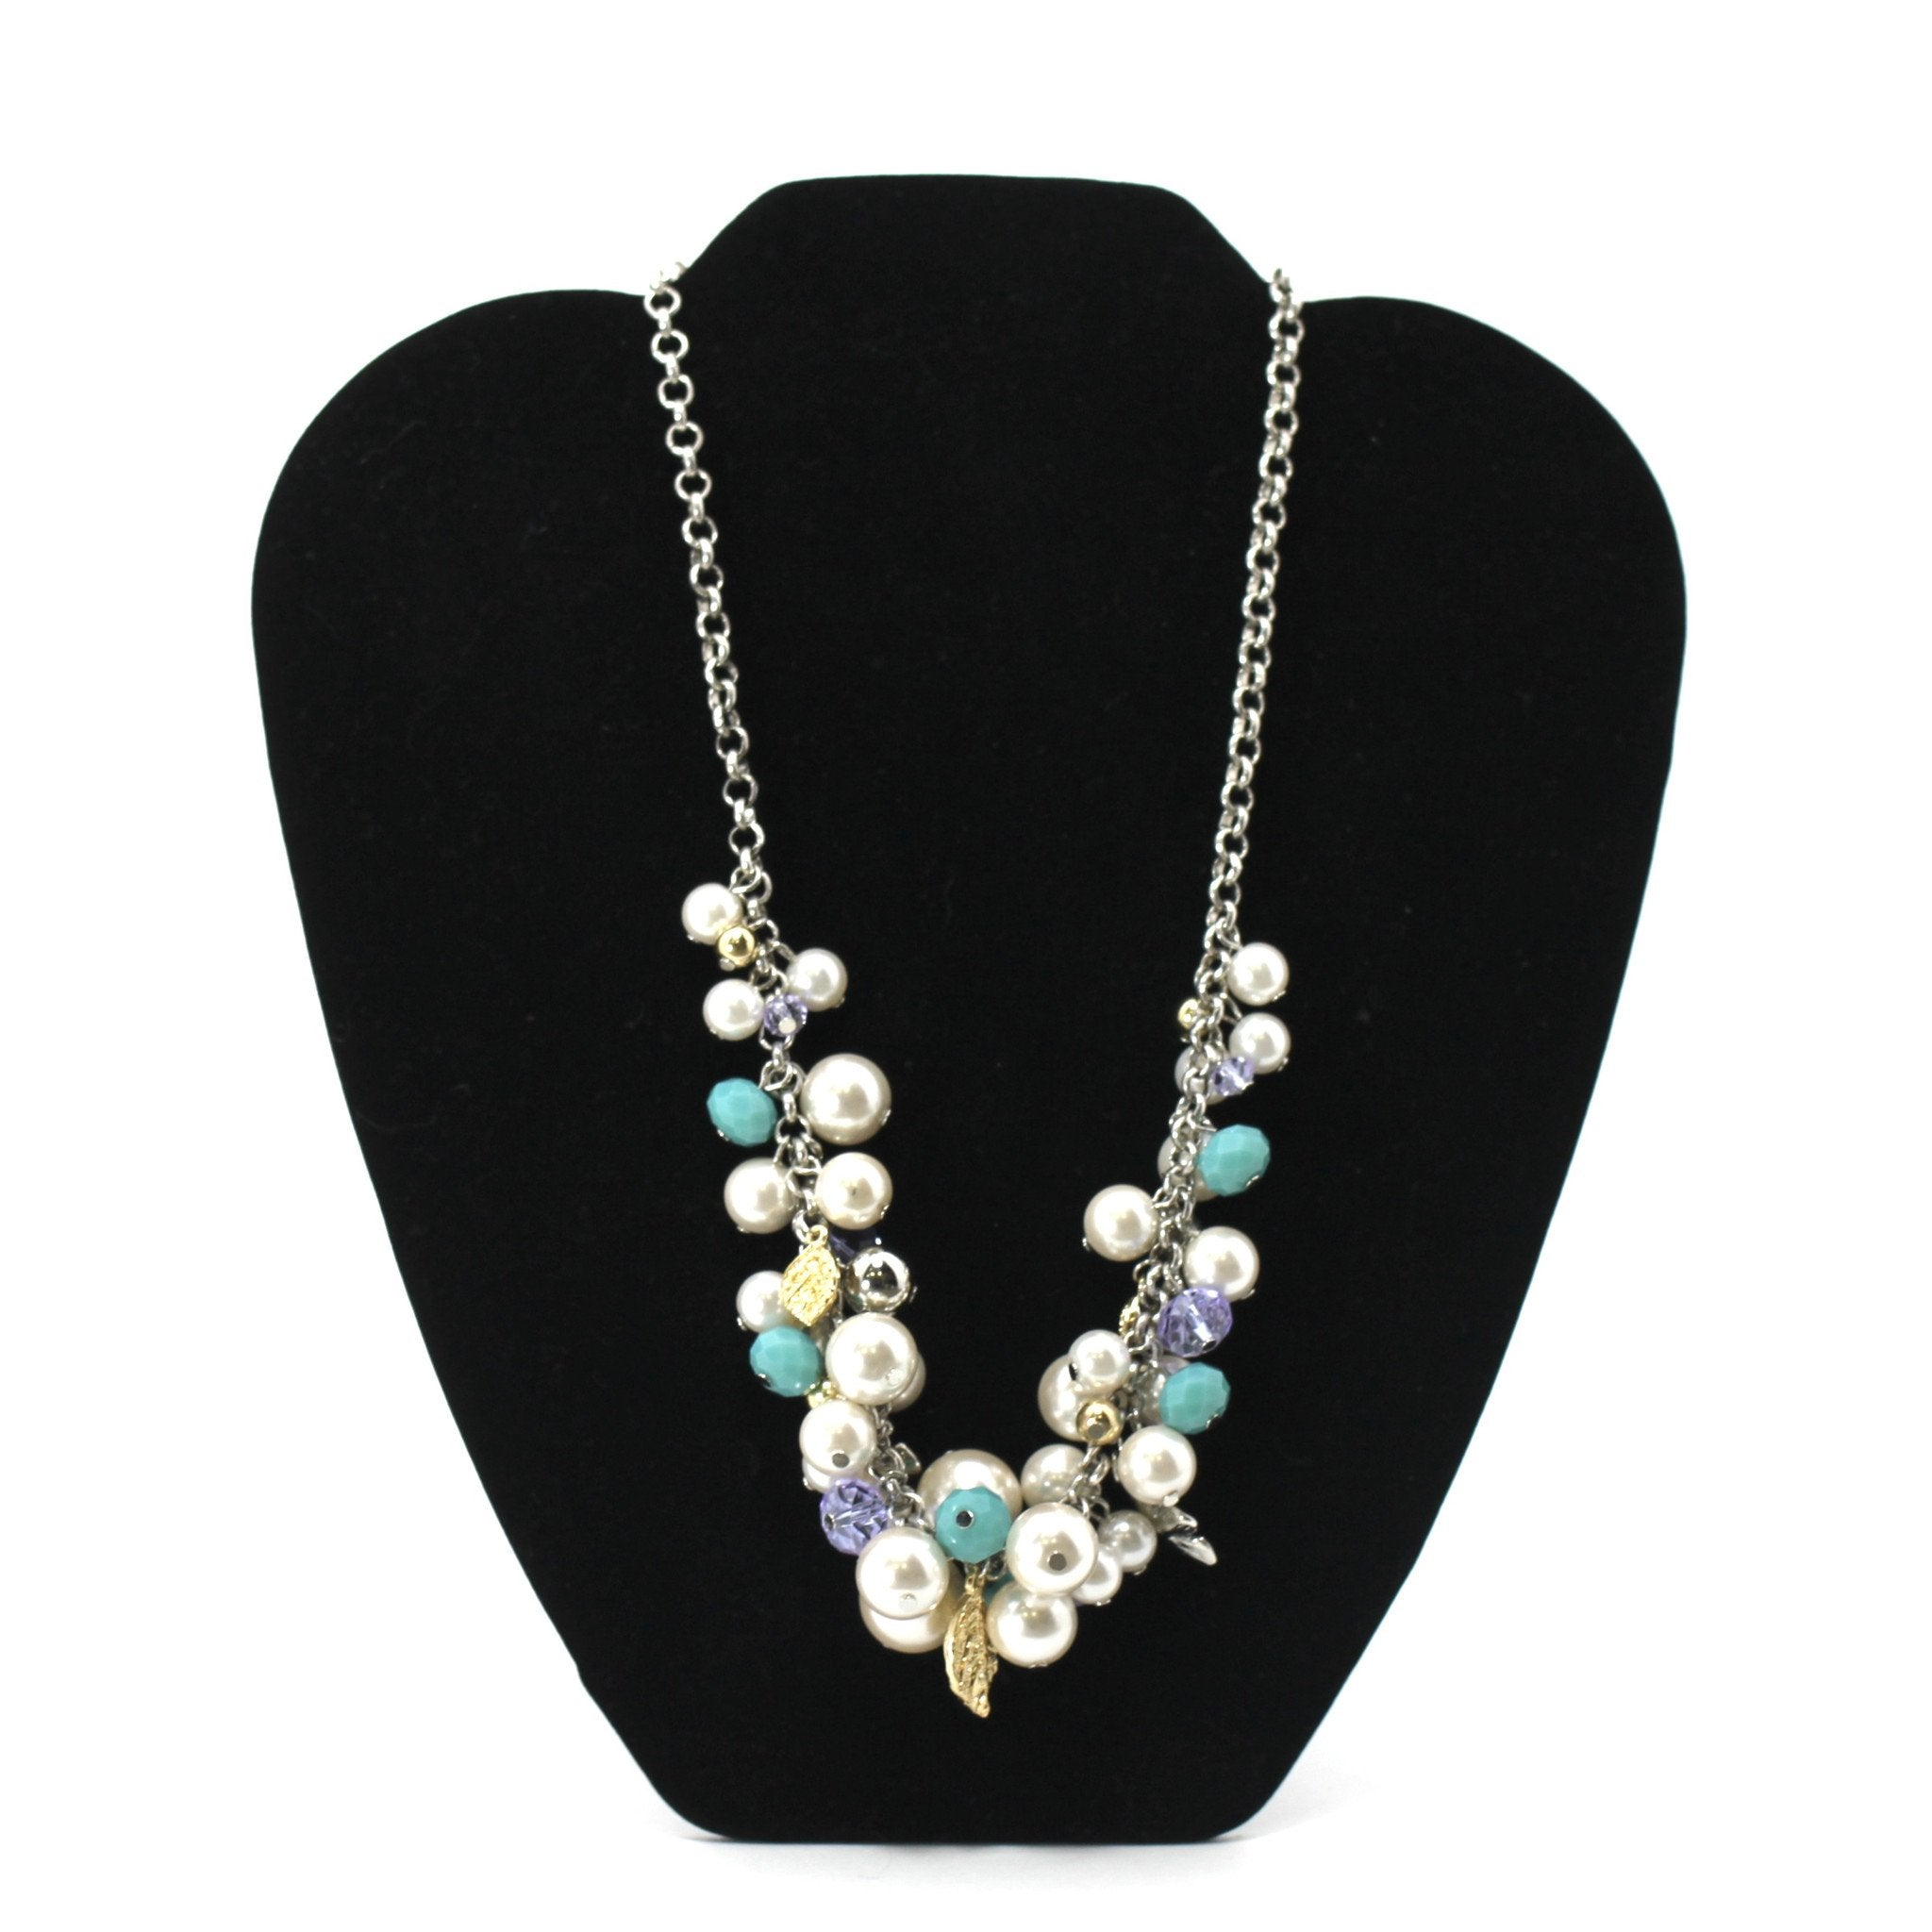 Beaded And Pearl Flower Necklace - Donated From The Designer